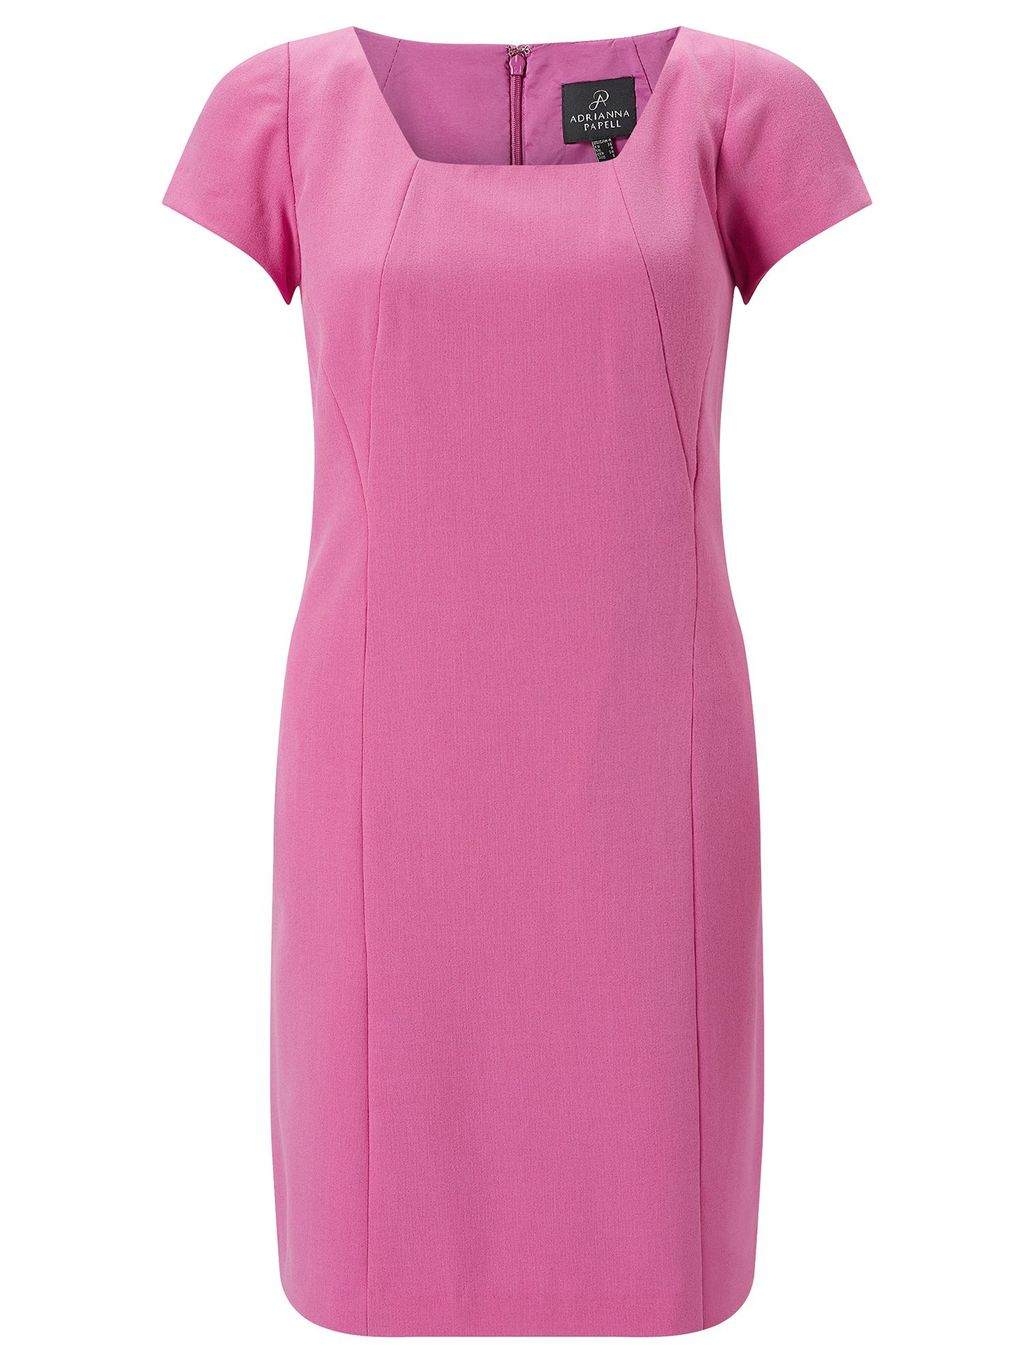 Short Sleeve Tailored Dress, Pink - style: shift; length: mid thigh; sleeve style: capped; fit: tailored/fitted; pattern: plain; predominant colour: pink; fibres: polyester/polyamide - 100%; occasions: occasion; sleeve length: short sleeve; texture group: crepes; neckline: medium square neck; pattern type: fabric; season: s/s 2016; wardrobe: event